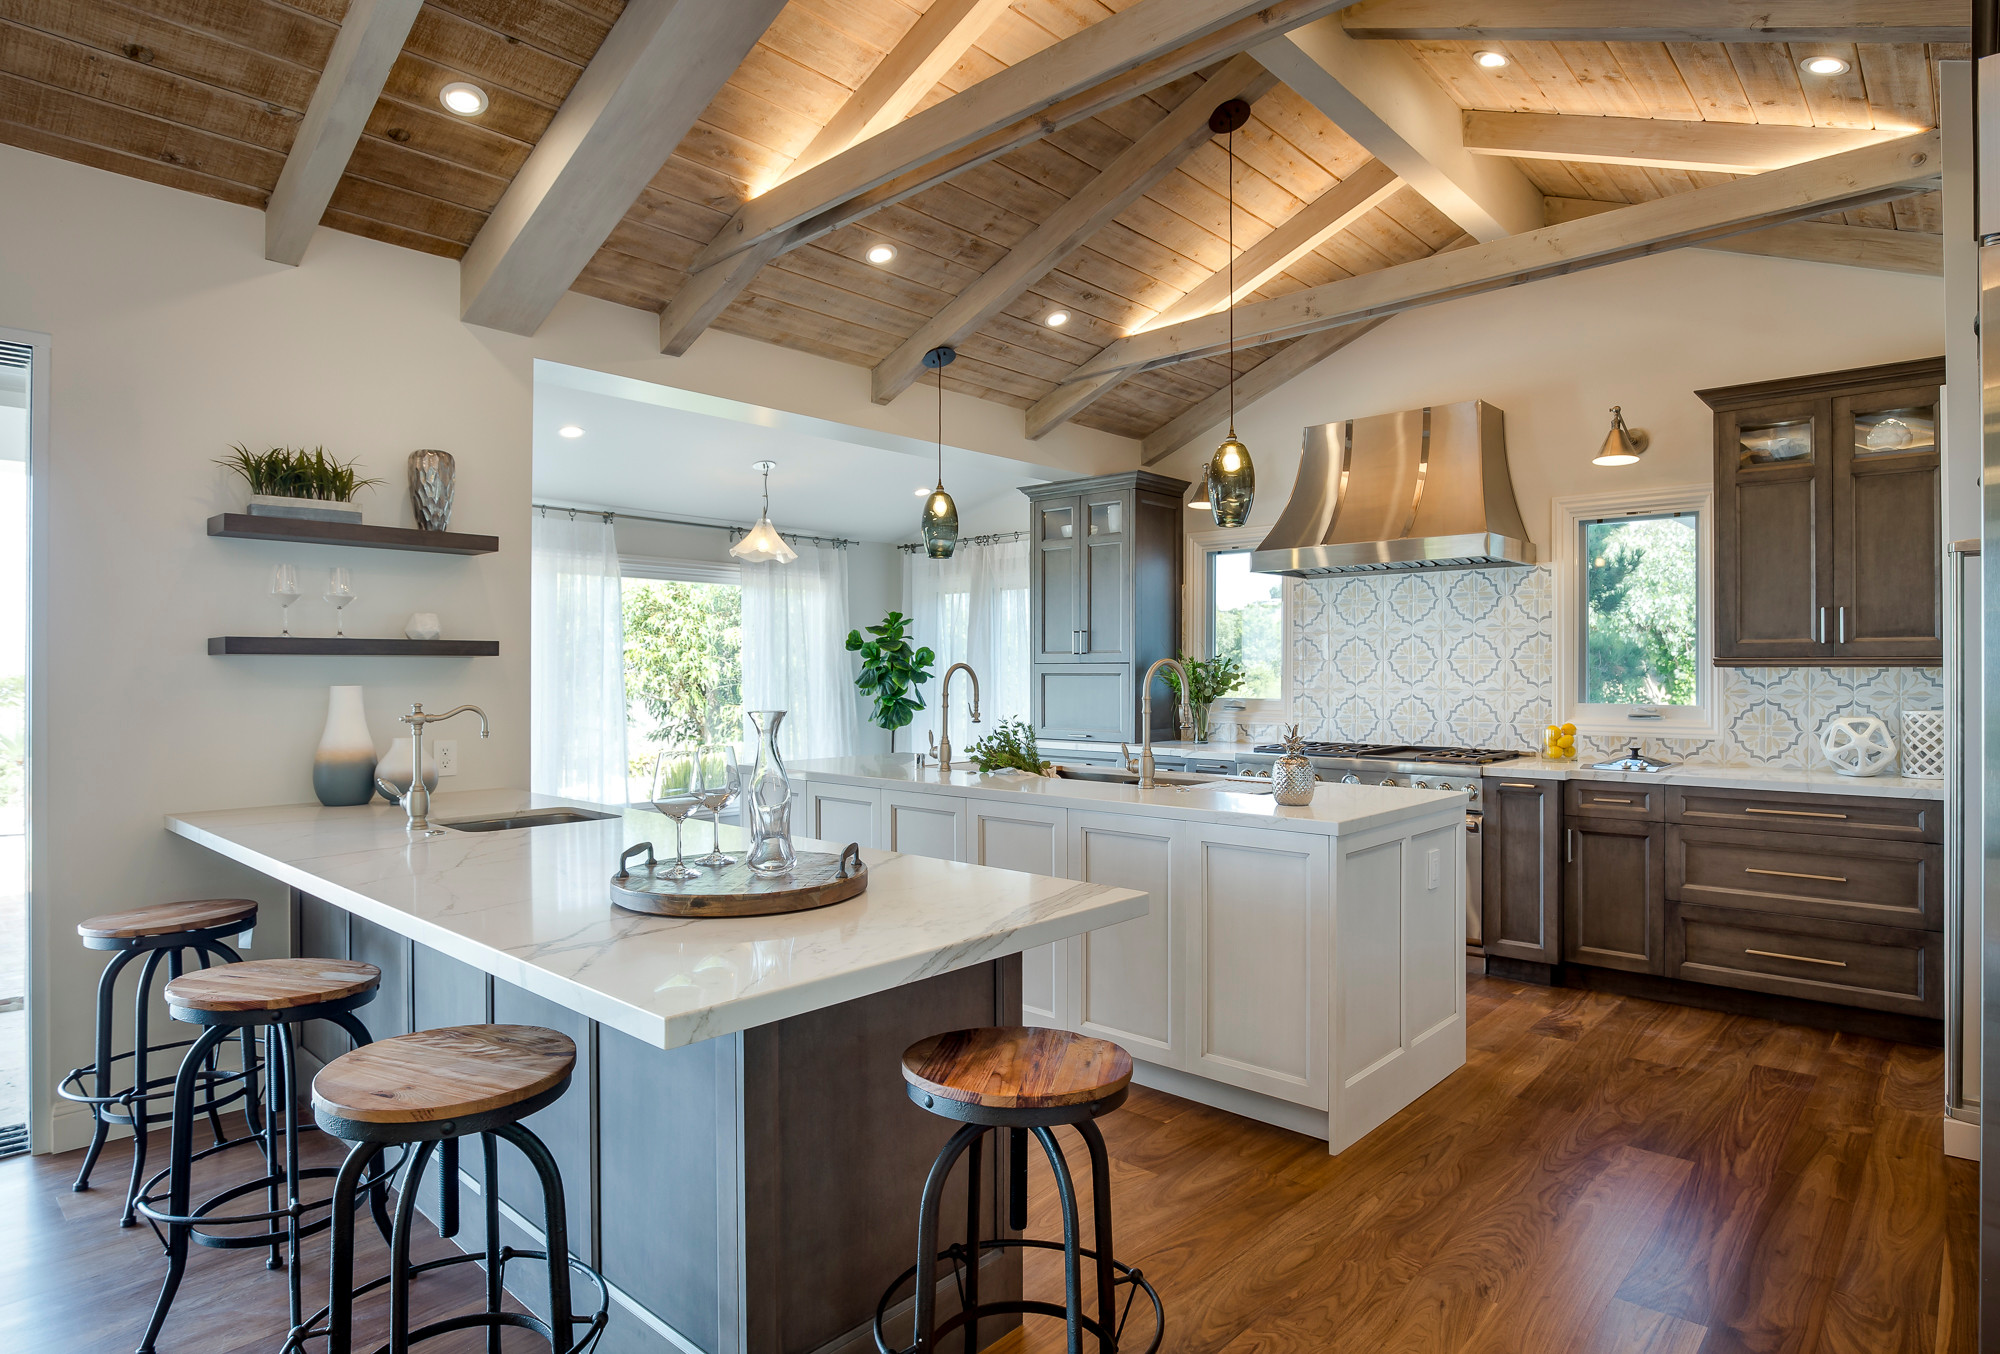 75 Beautiful Farmhouse Kitchen With Dark Wood Cabinets Pictures Ideas January 2021 Houzz